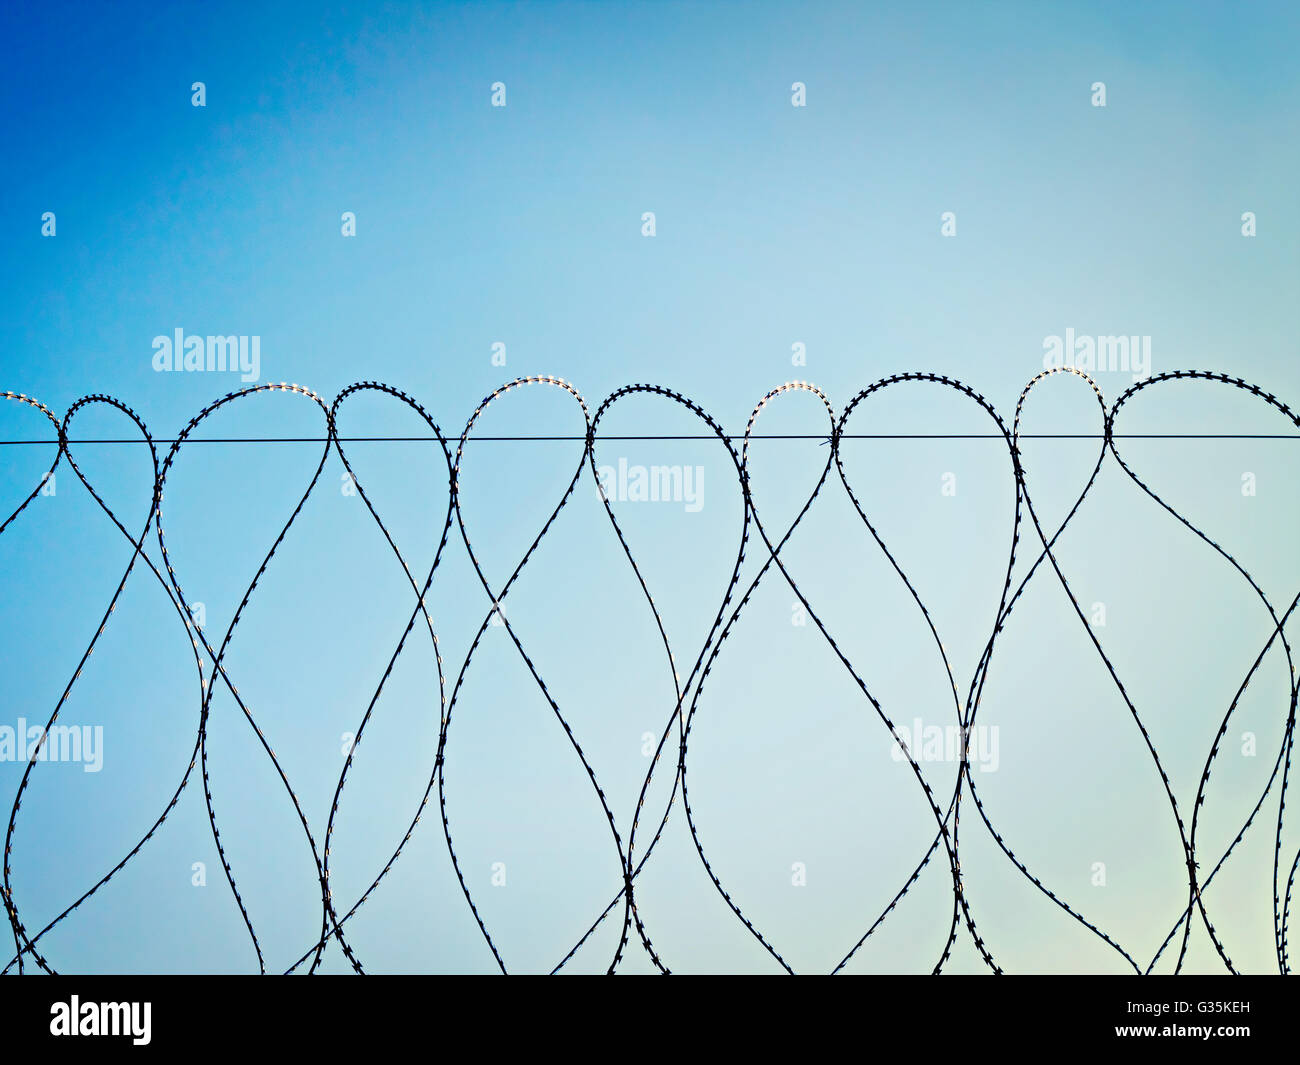 Bob Wire Stock Photos & Bob Wire Stock Images - Page 2 - Alamy